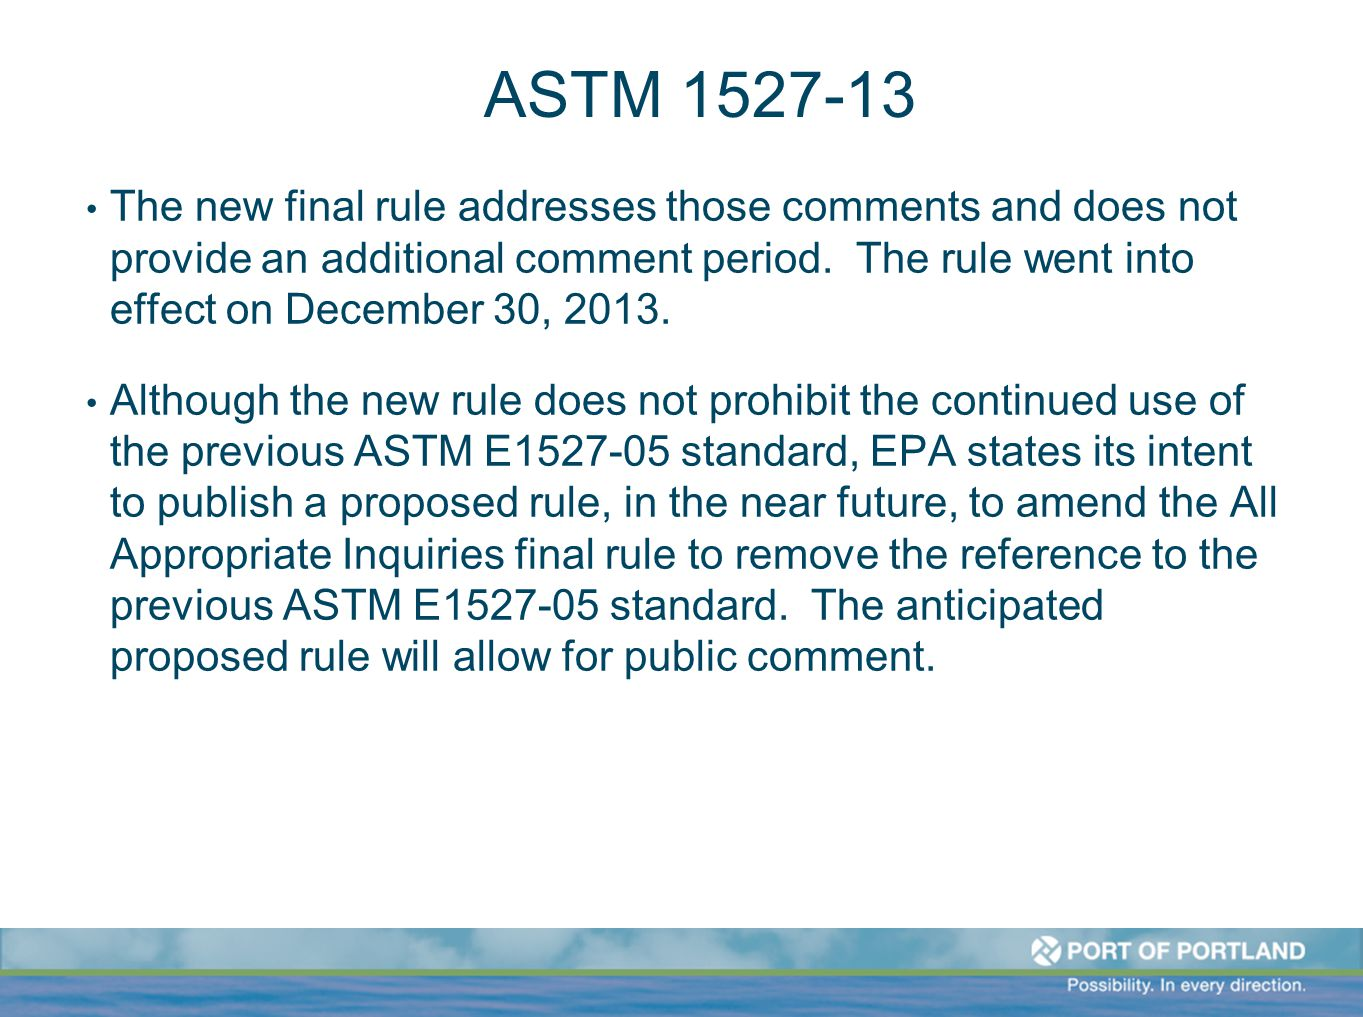 ASTM 1527-13 The new final rule addresses those comments and does not provide an additional comment period. The rule went into effect on December 30,